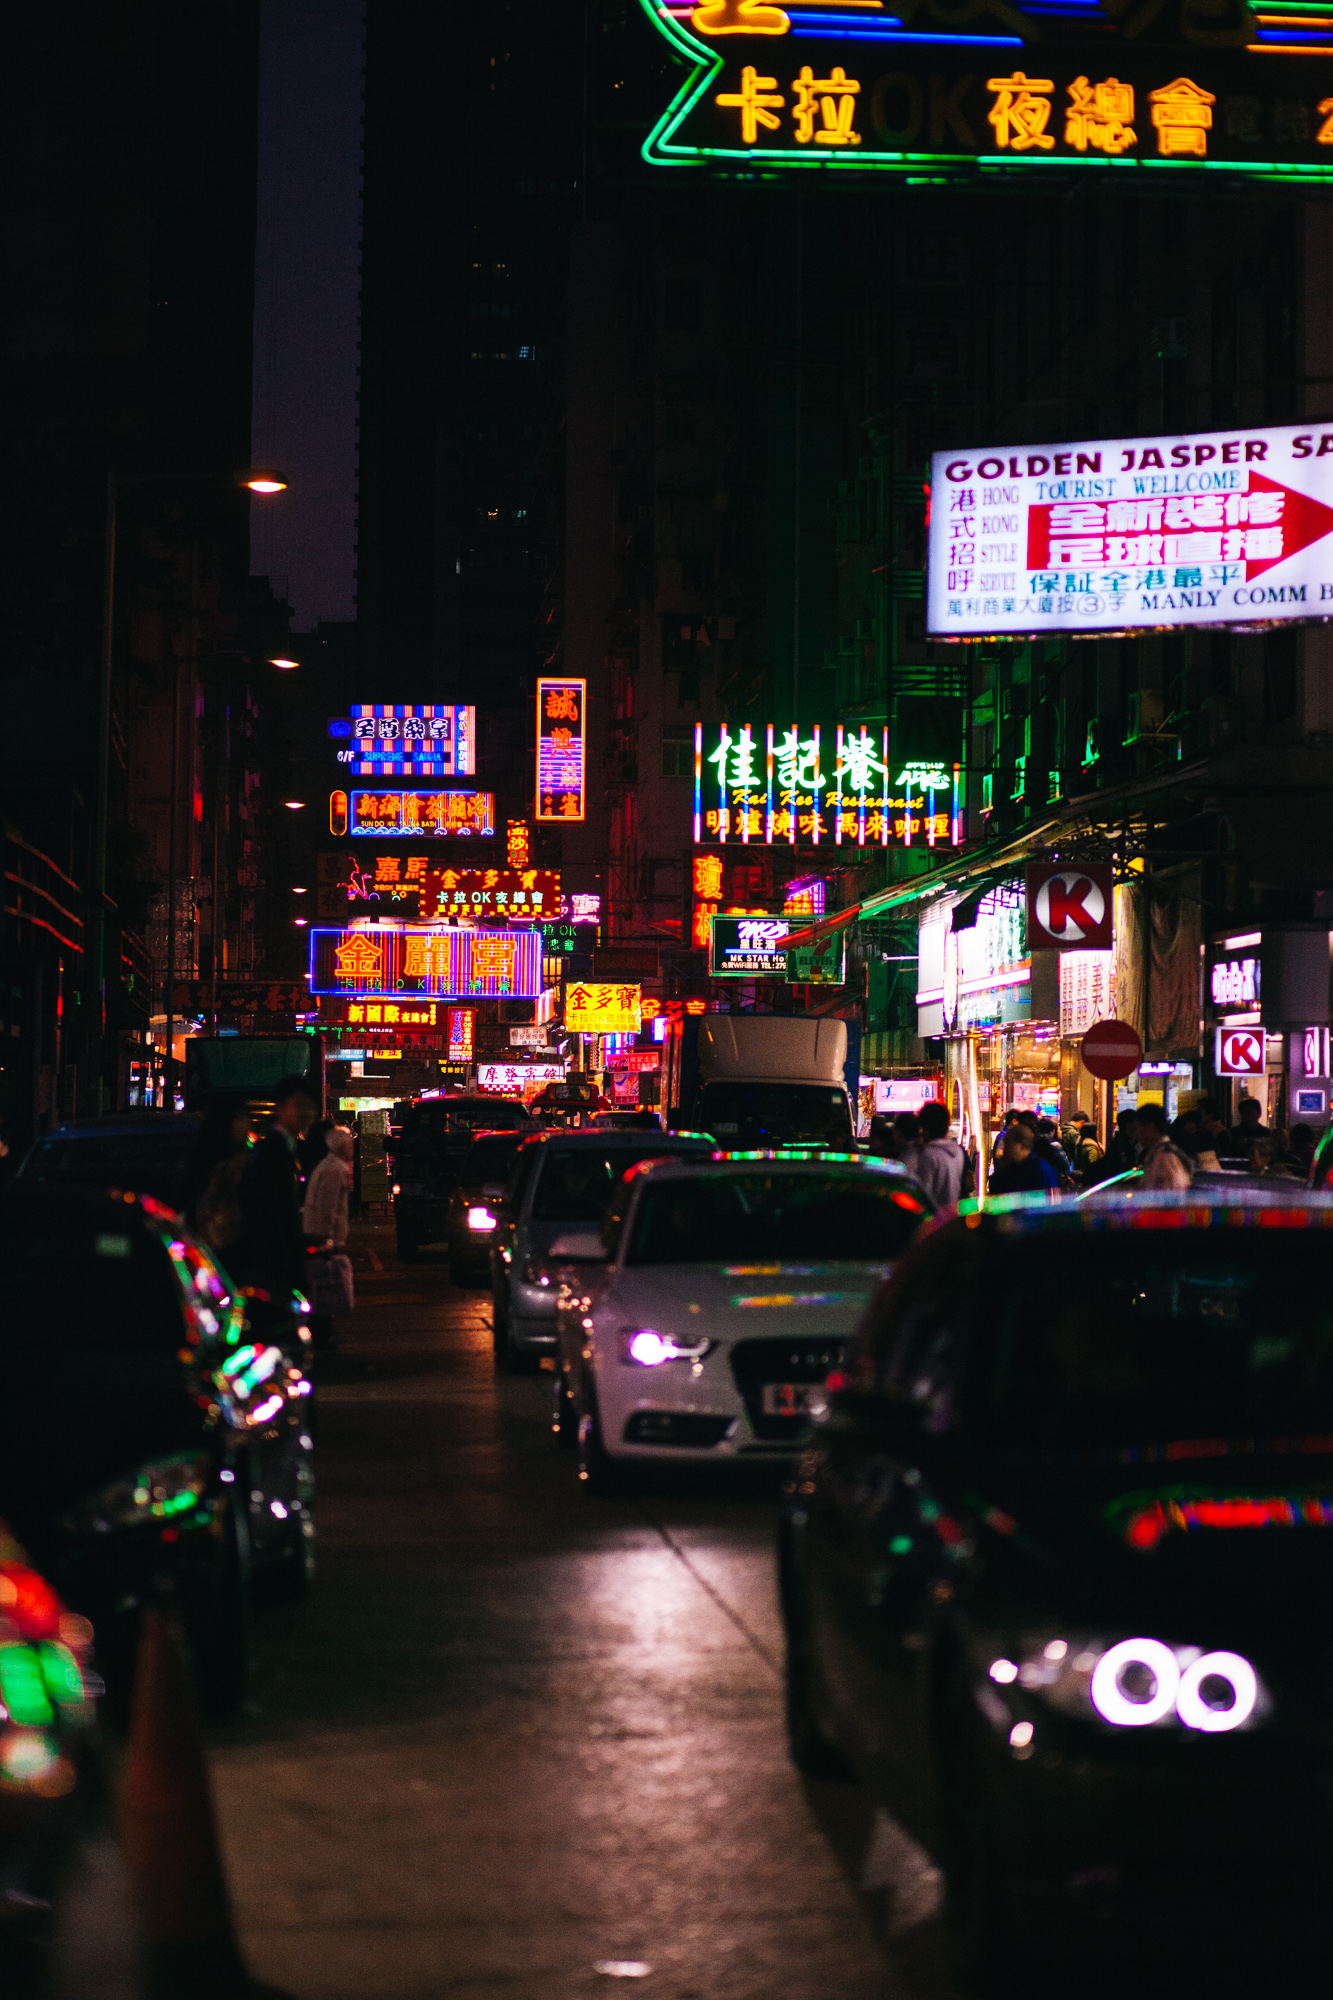 Who needs natural light when you've got neon lighting the streets for as far as the eye can see?